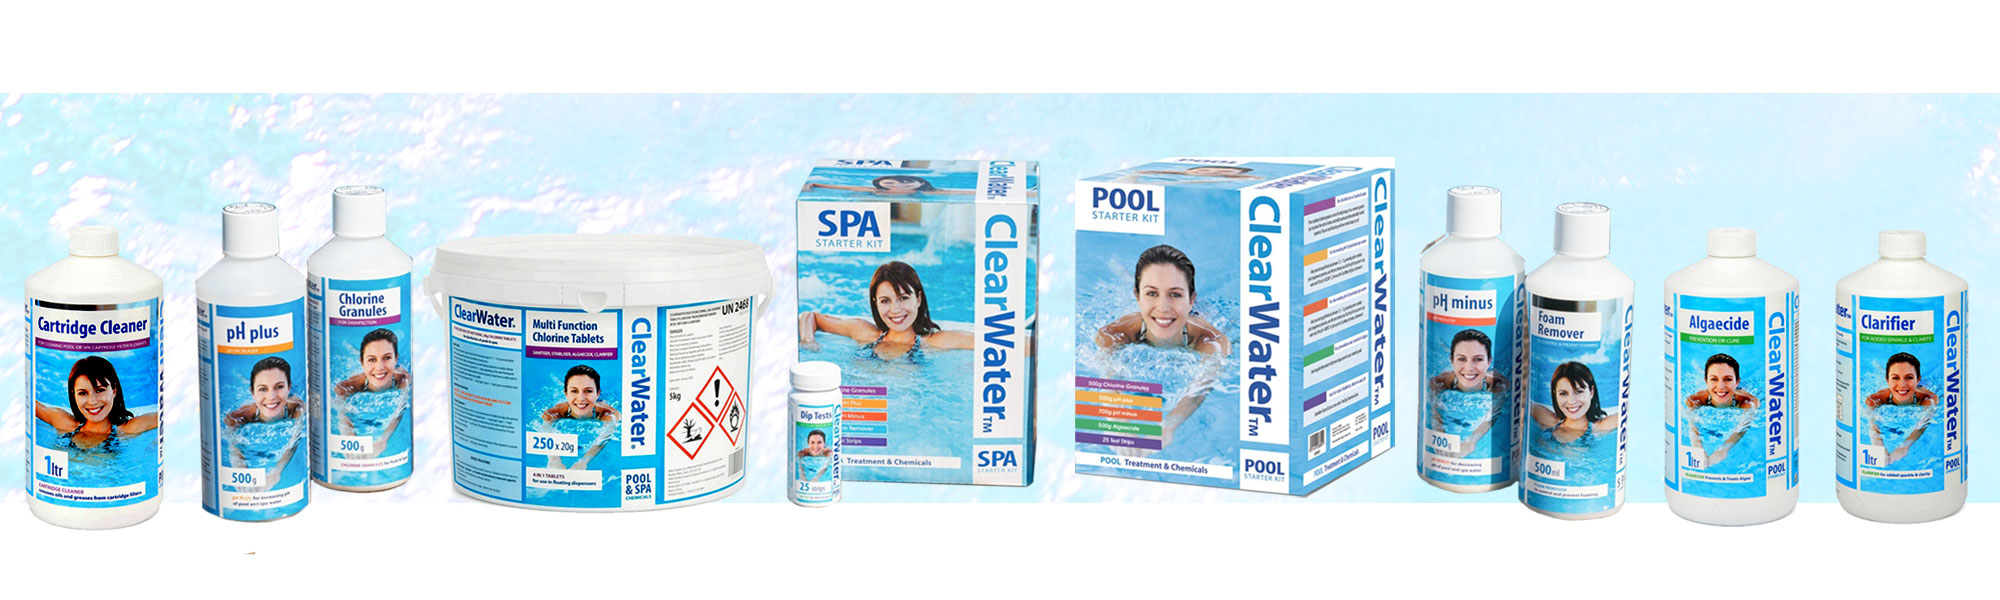 Clearwater Pool and Spa chemicals